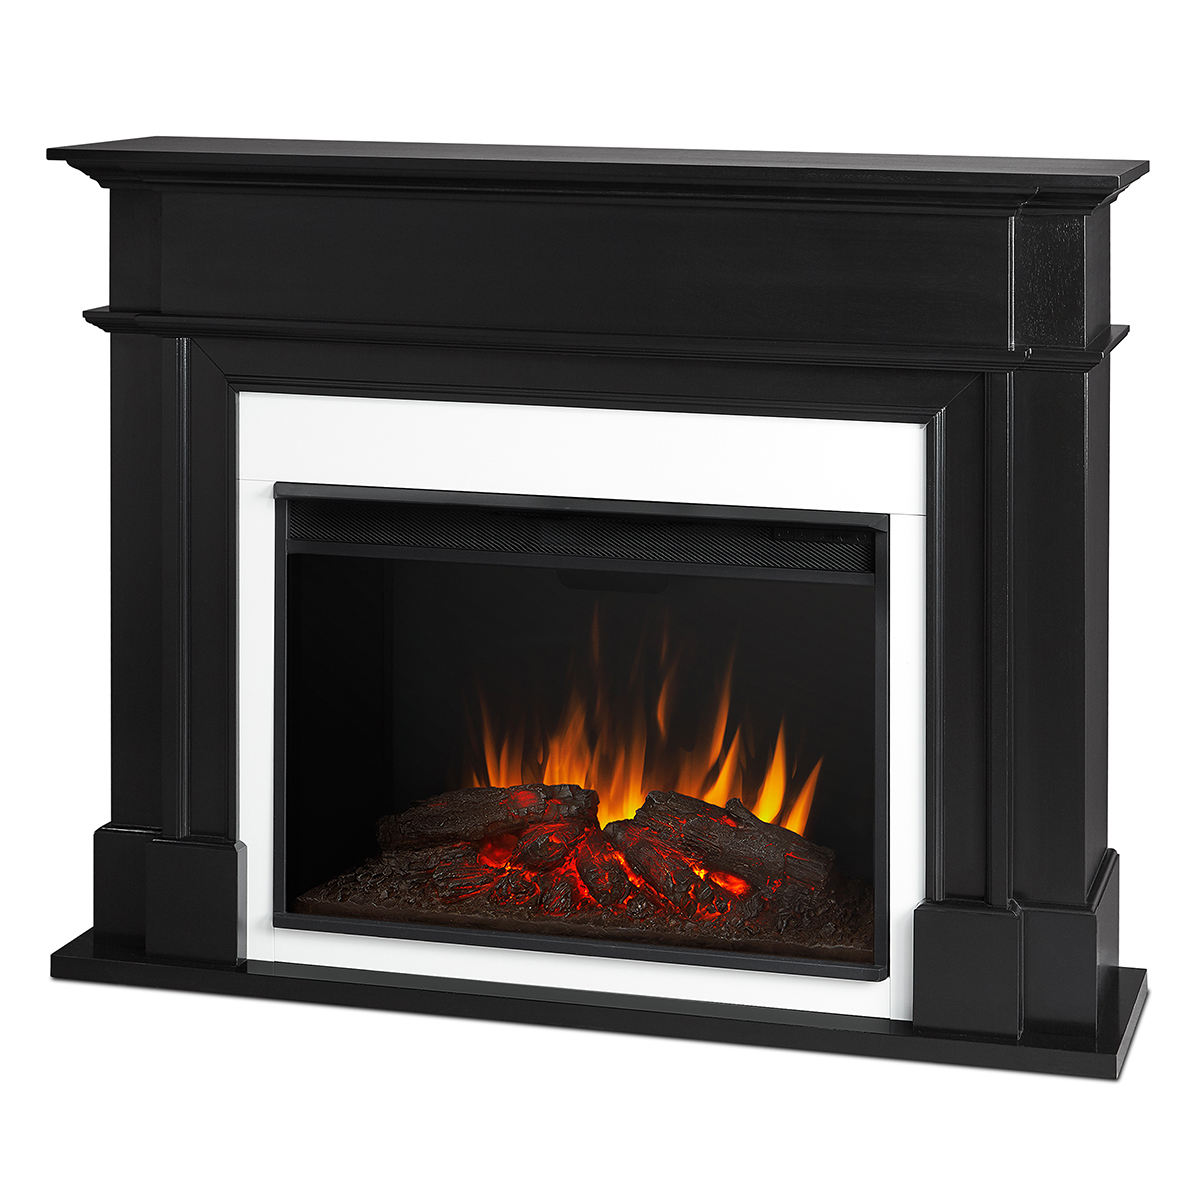 Real Flame Electric Fireplaces Gel Burn Fireplaces Fire Pits At Dynamic Home Decor